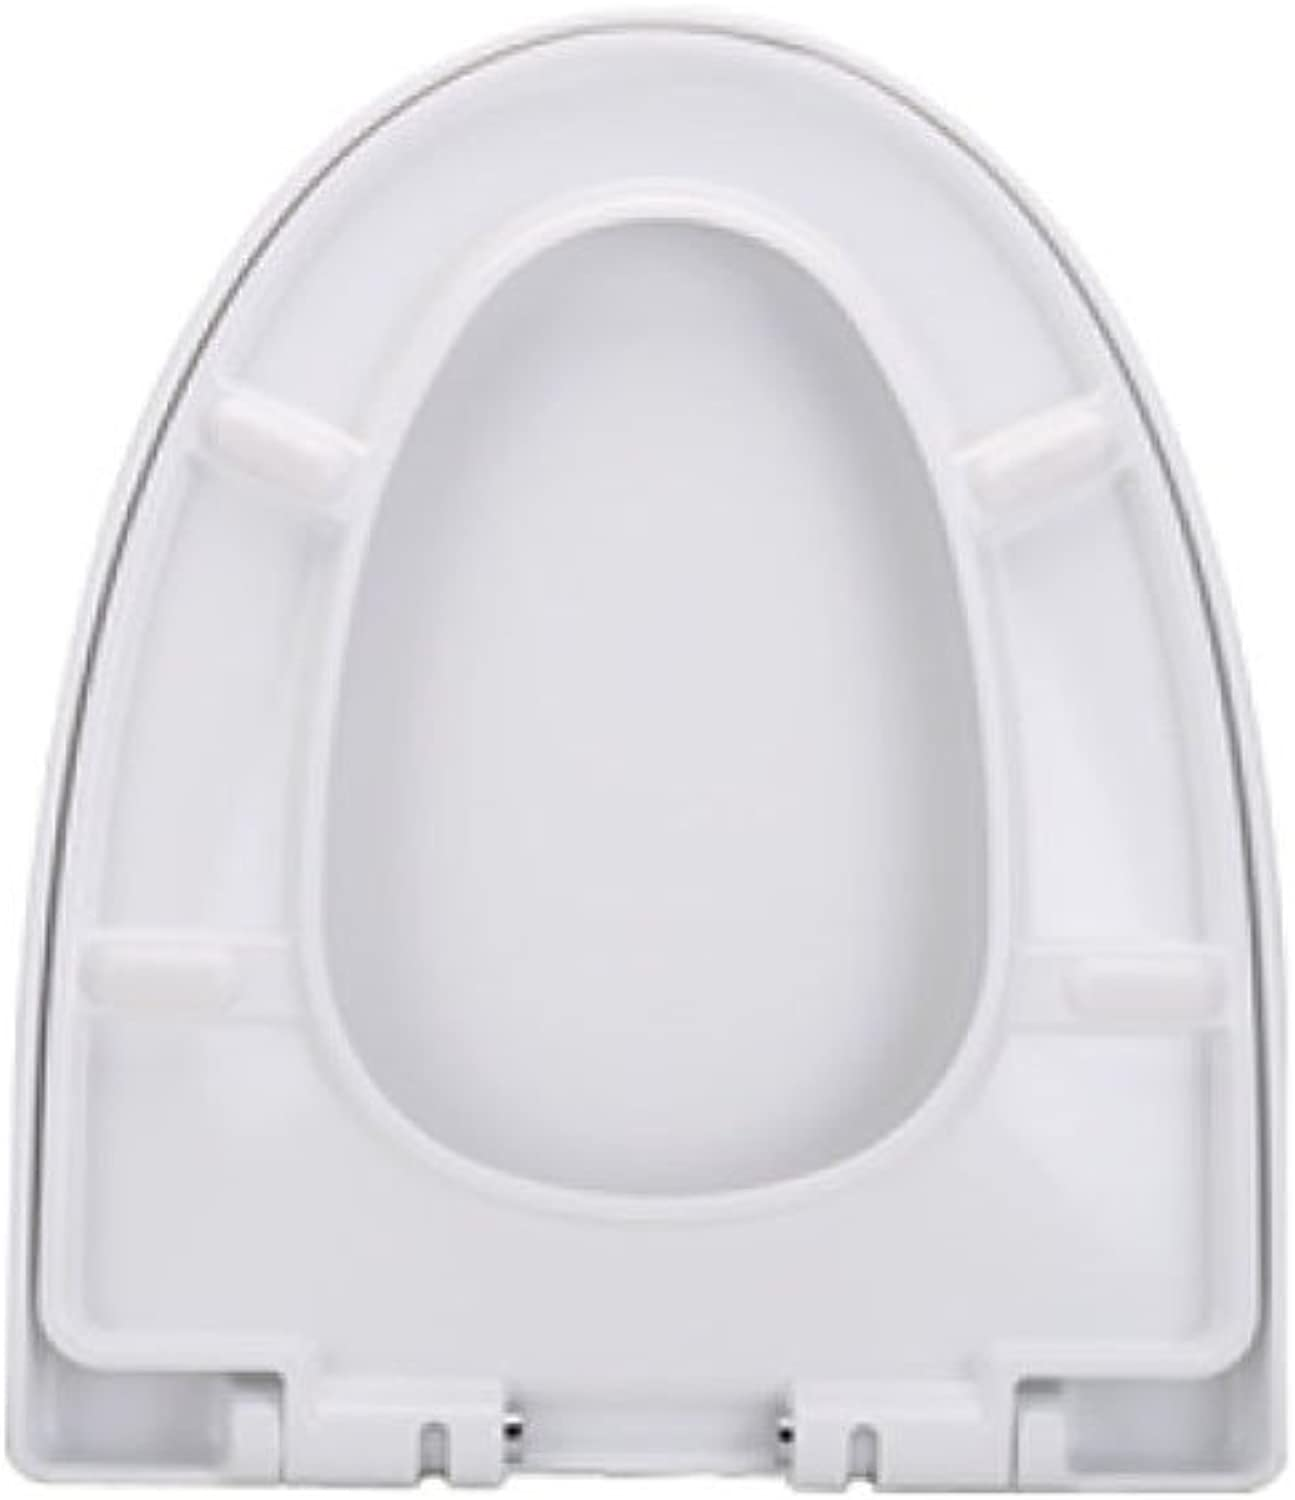 ANHPI Universal Toilet Seat Toilet Slow Down Mute Cover Antibacterial,D